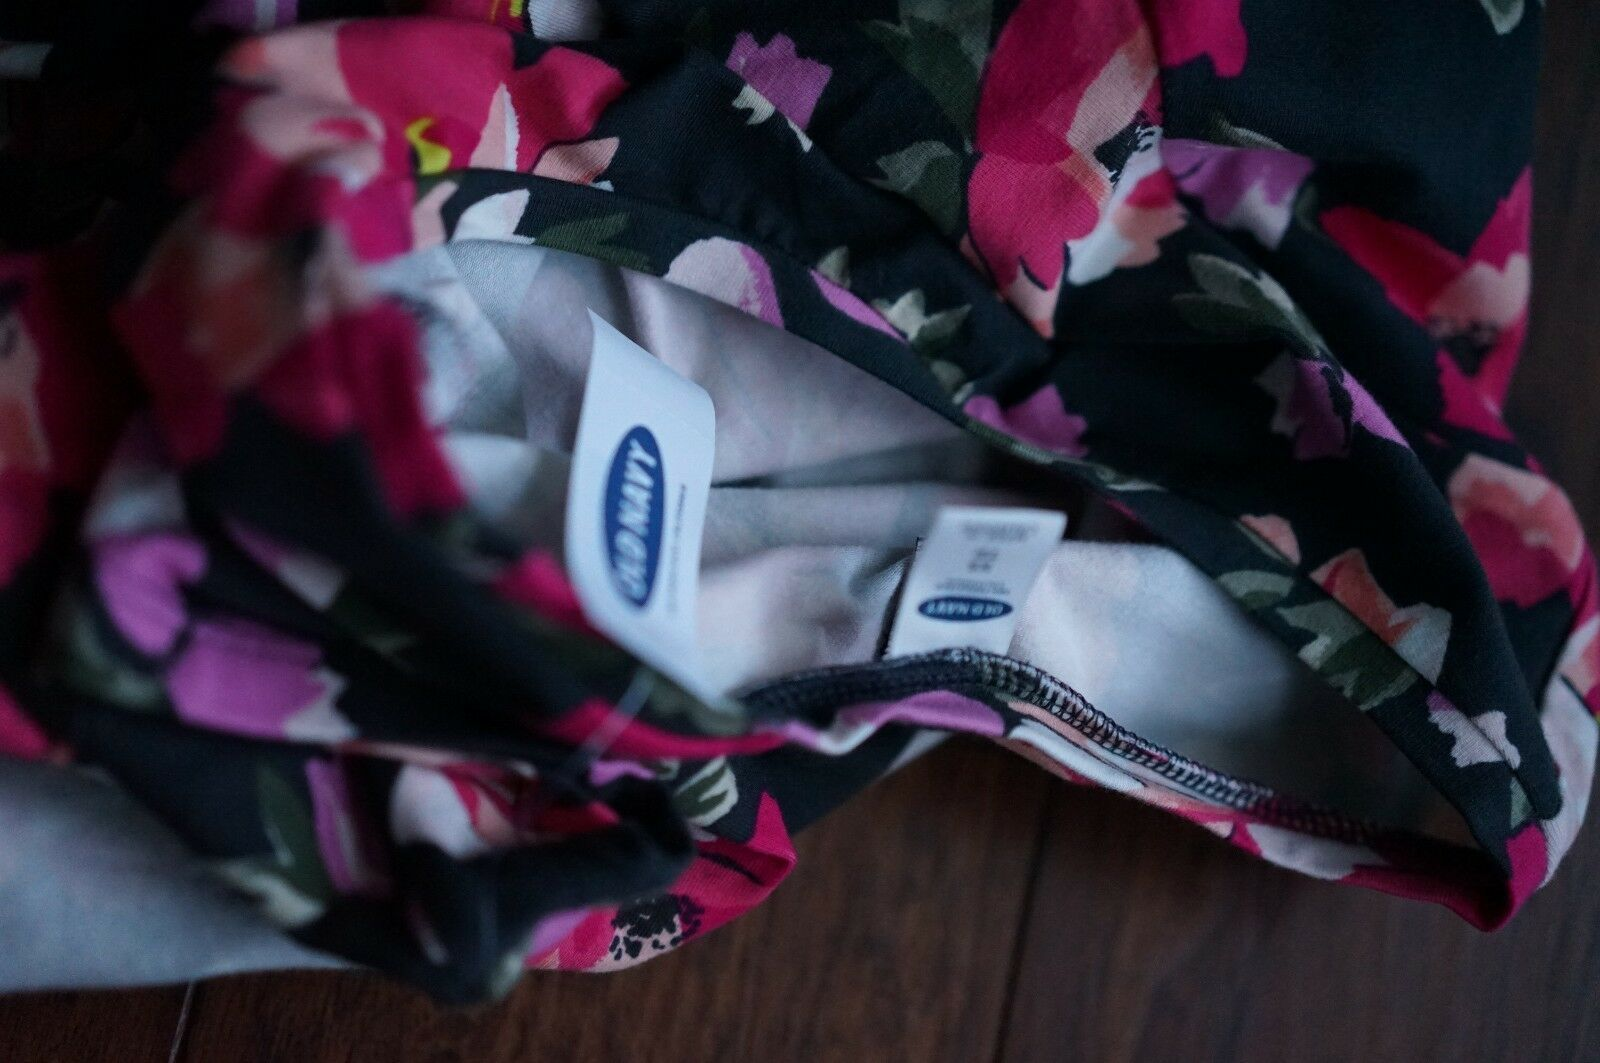 NWT XS Old Navy women's black w/ pink multi-color floral design DRESS